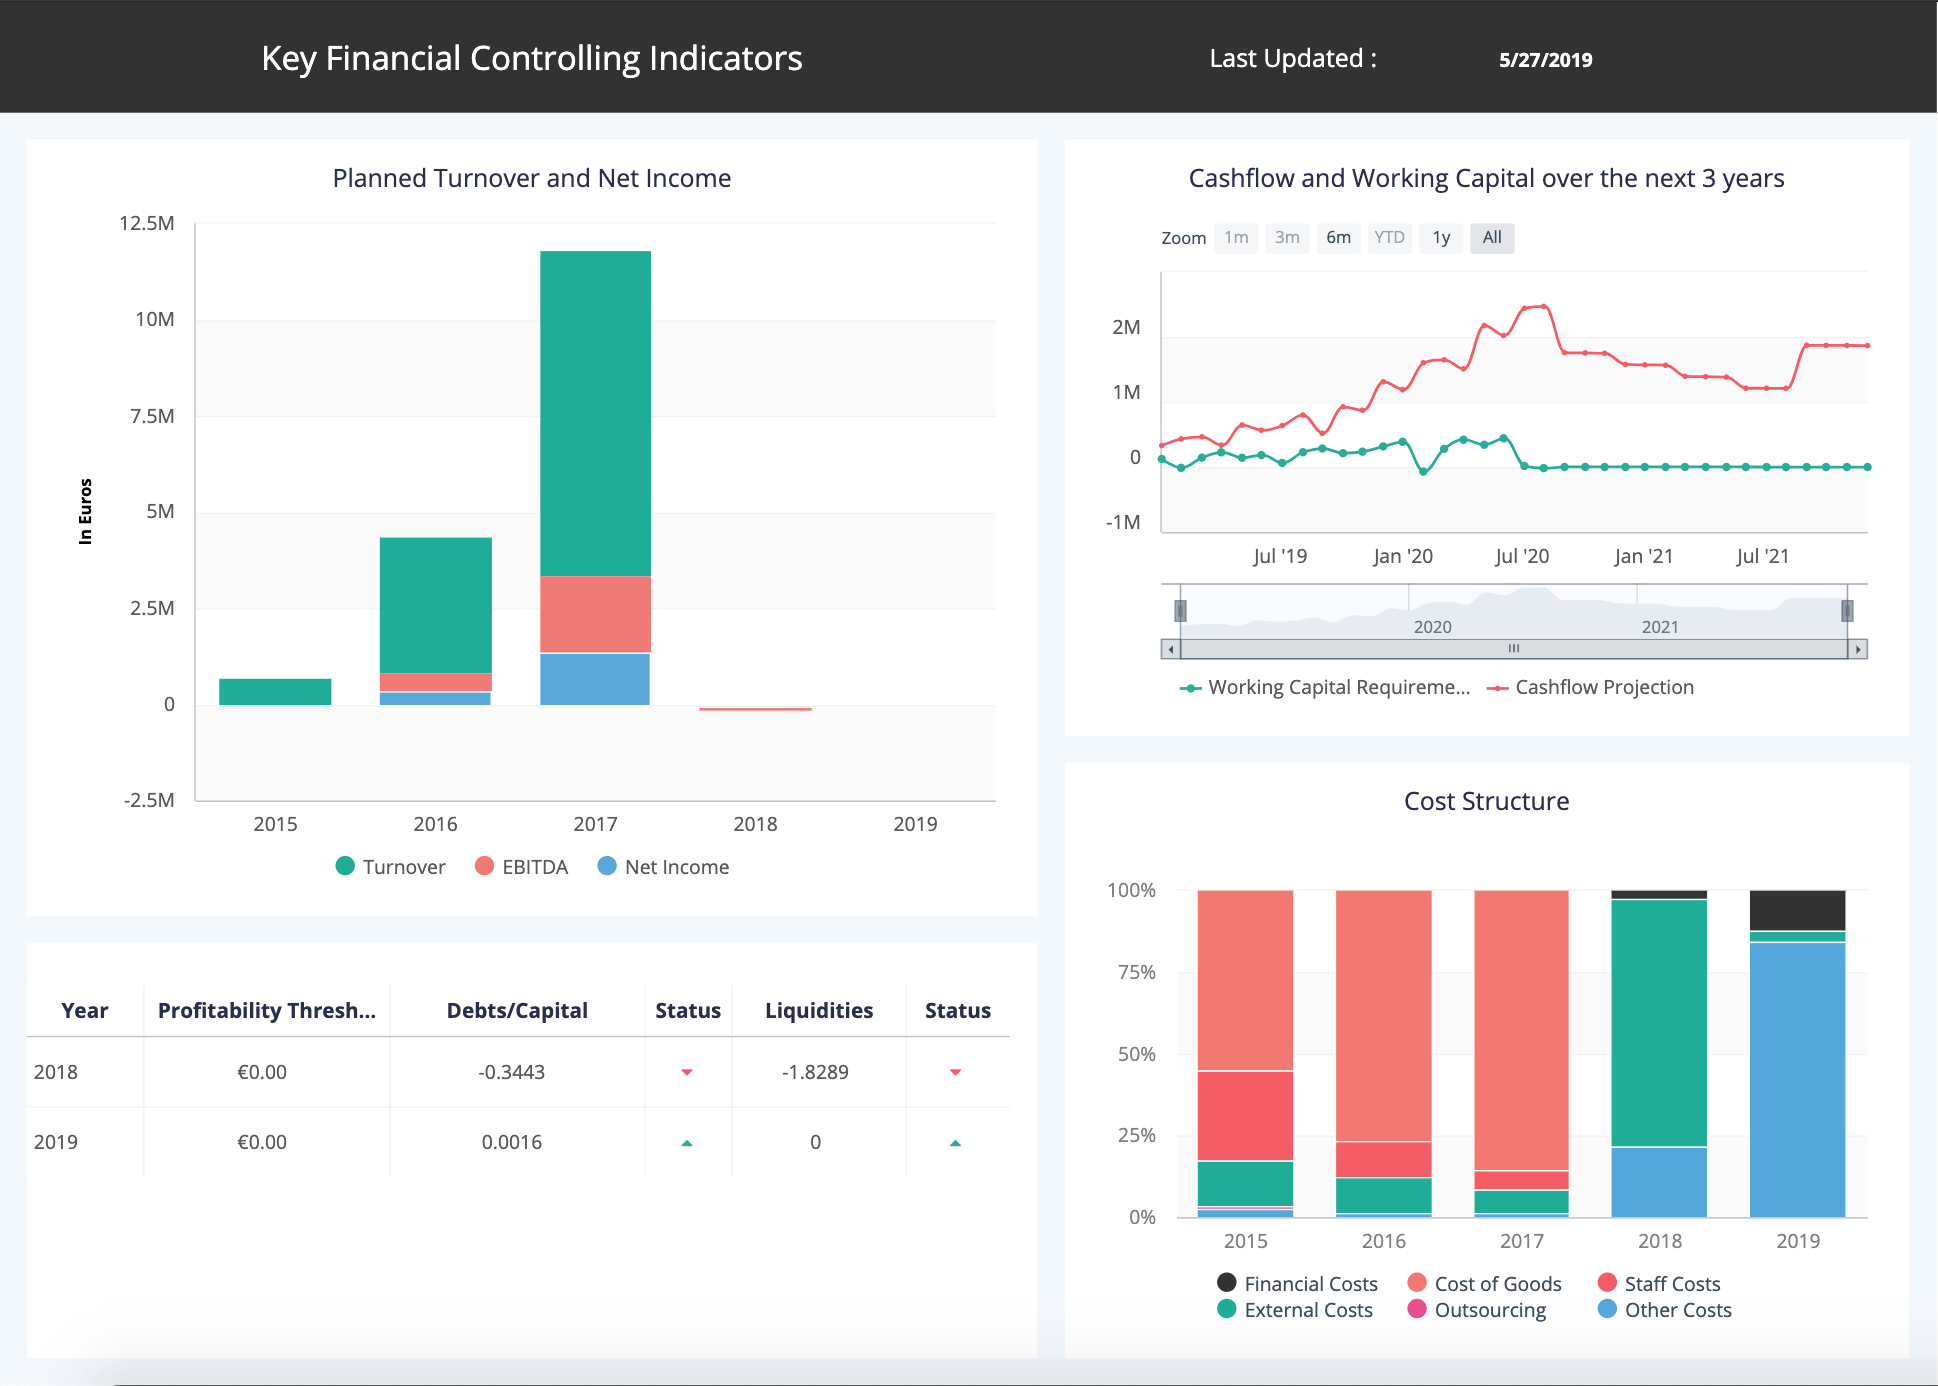 Project Management Dashboards Header X further Ex le Dashboard moreover School Management Dashboard moreover Beca B E B D Dca C additionally Ero Figure. on performance dashboard examples